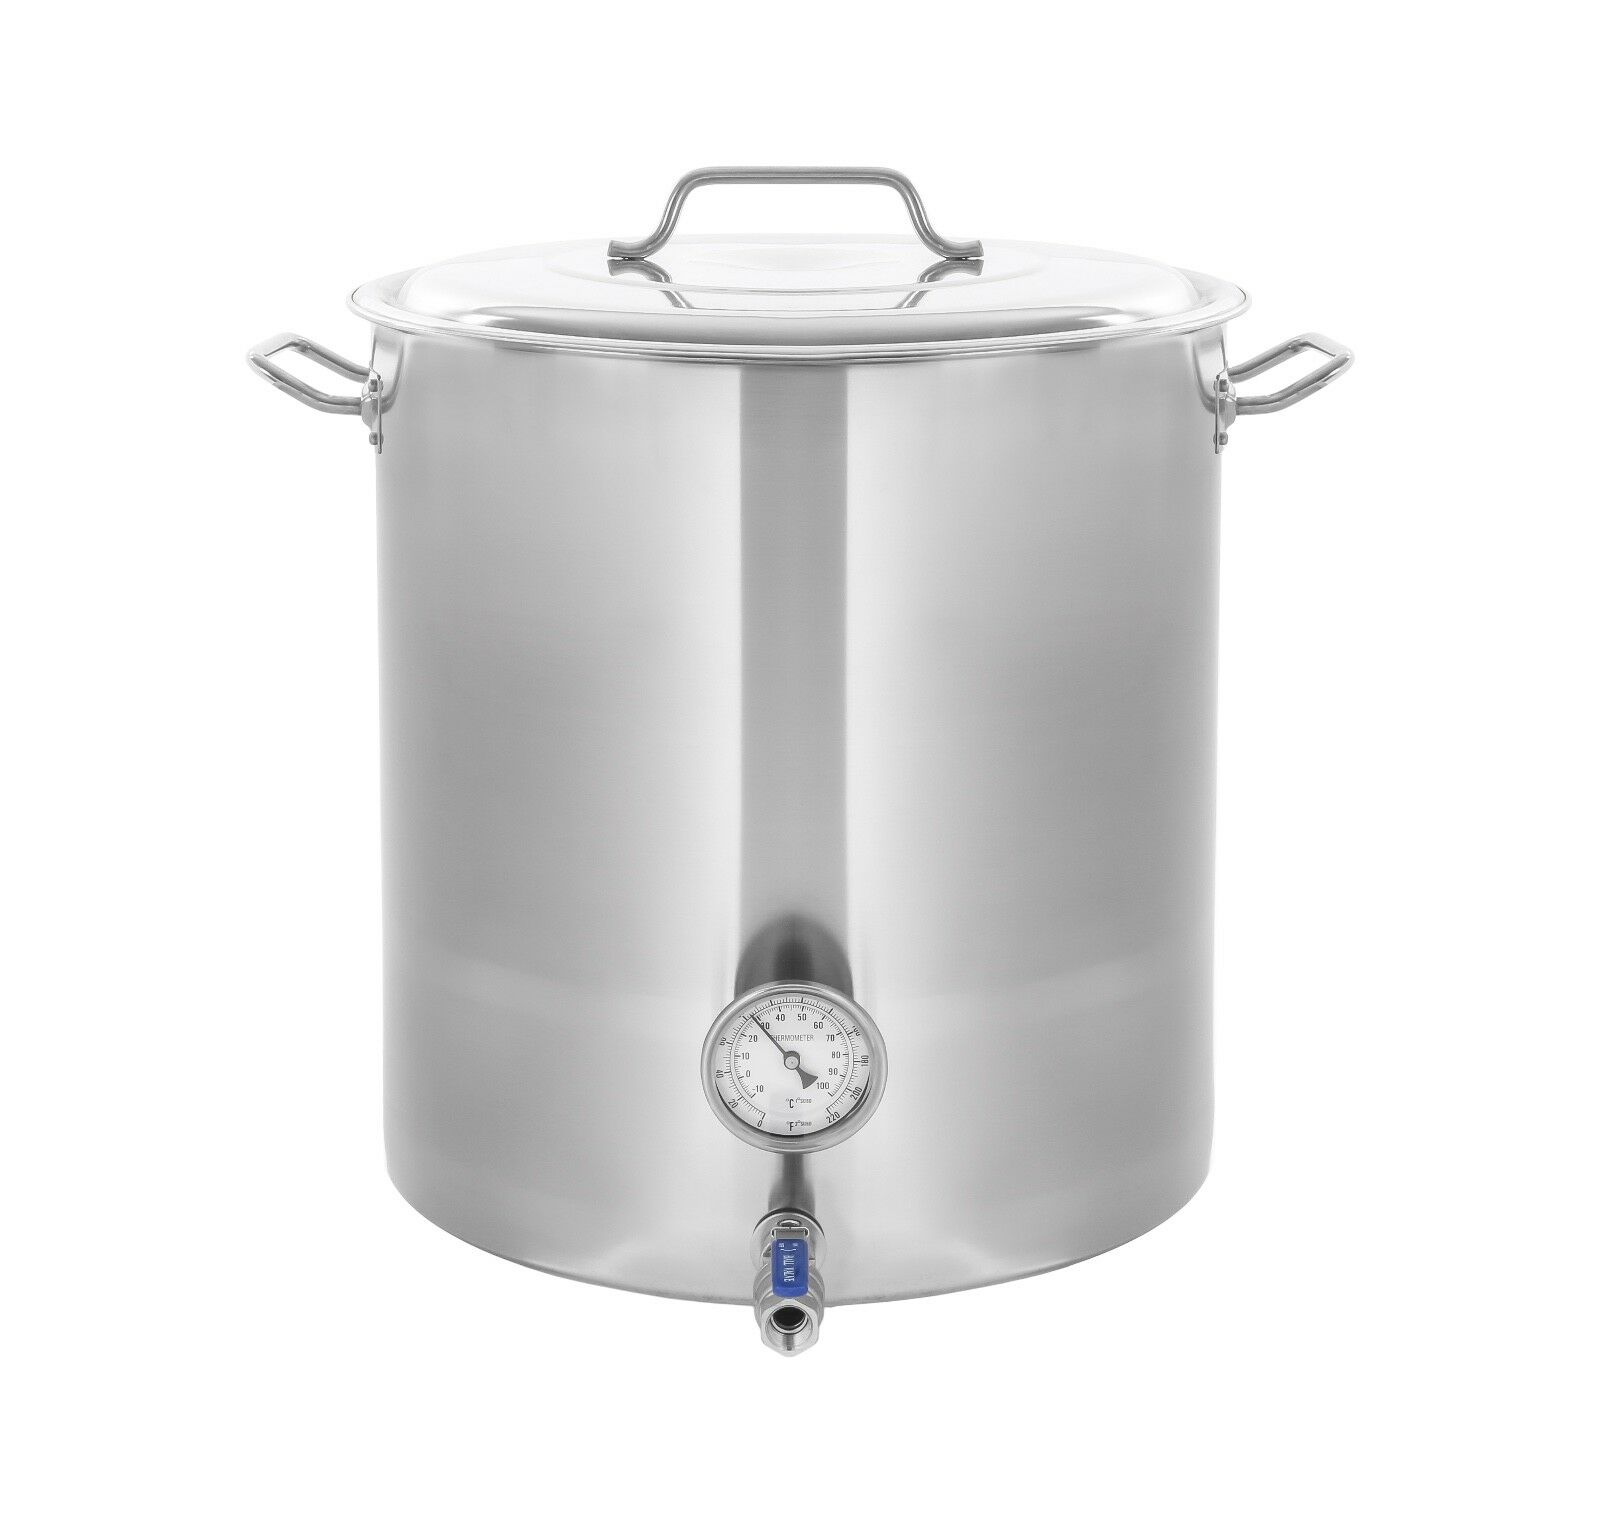 $101.04 - CONCORD Stainless Steel Home Brew Kettle Brewing Stock Pot Beer Wine Set